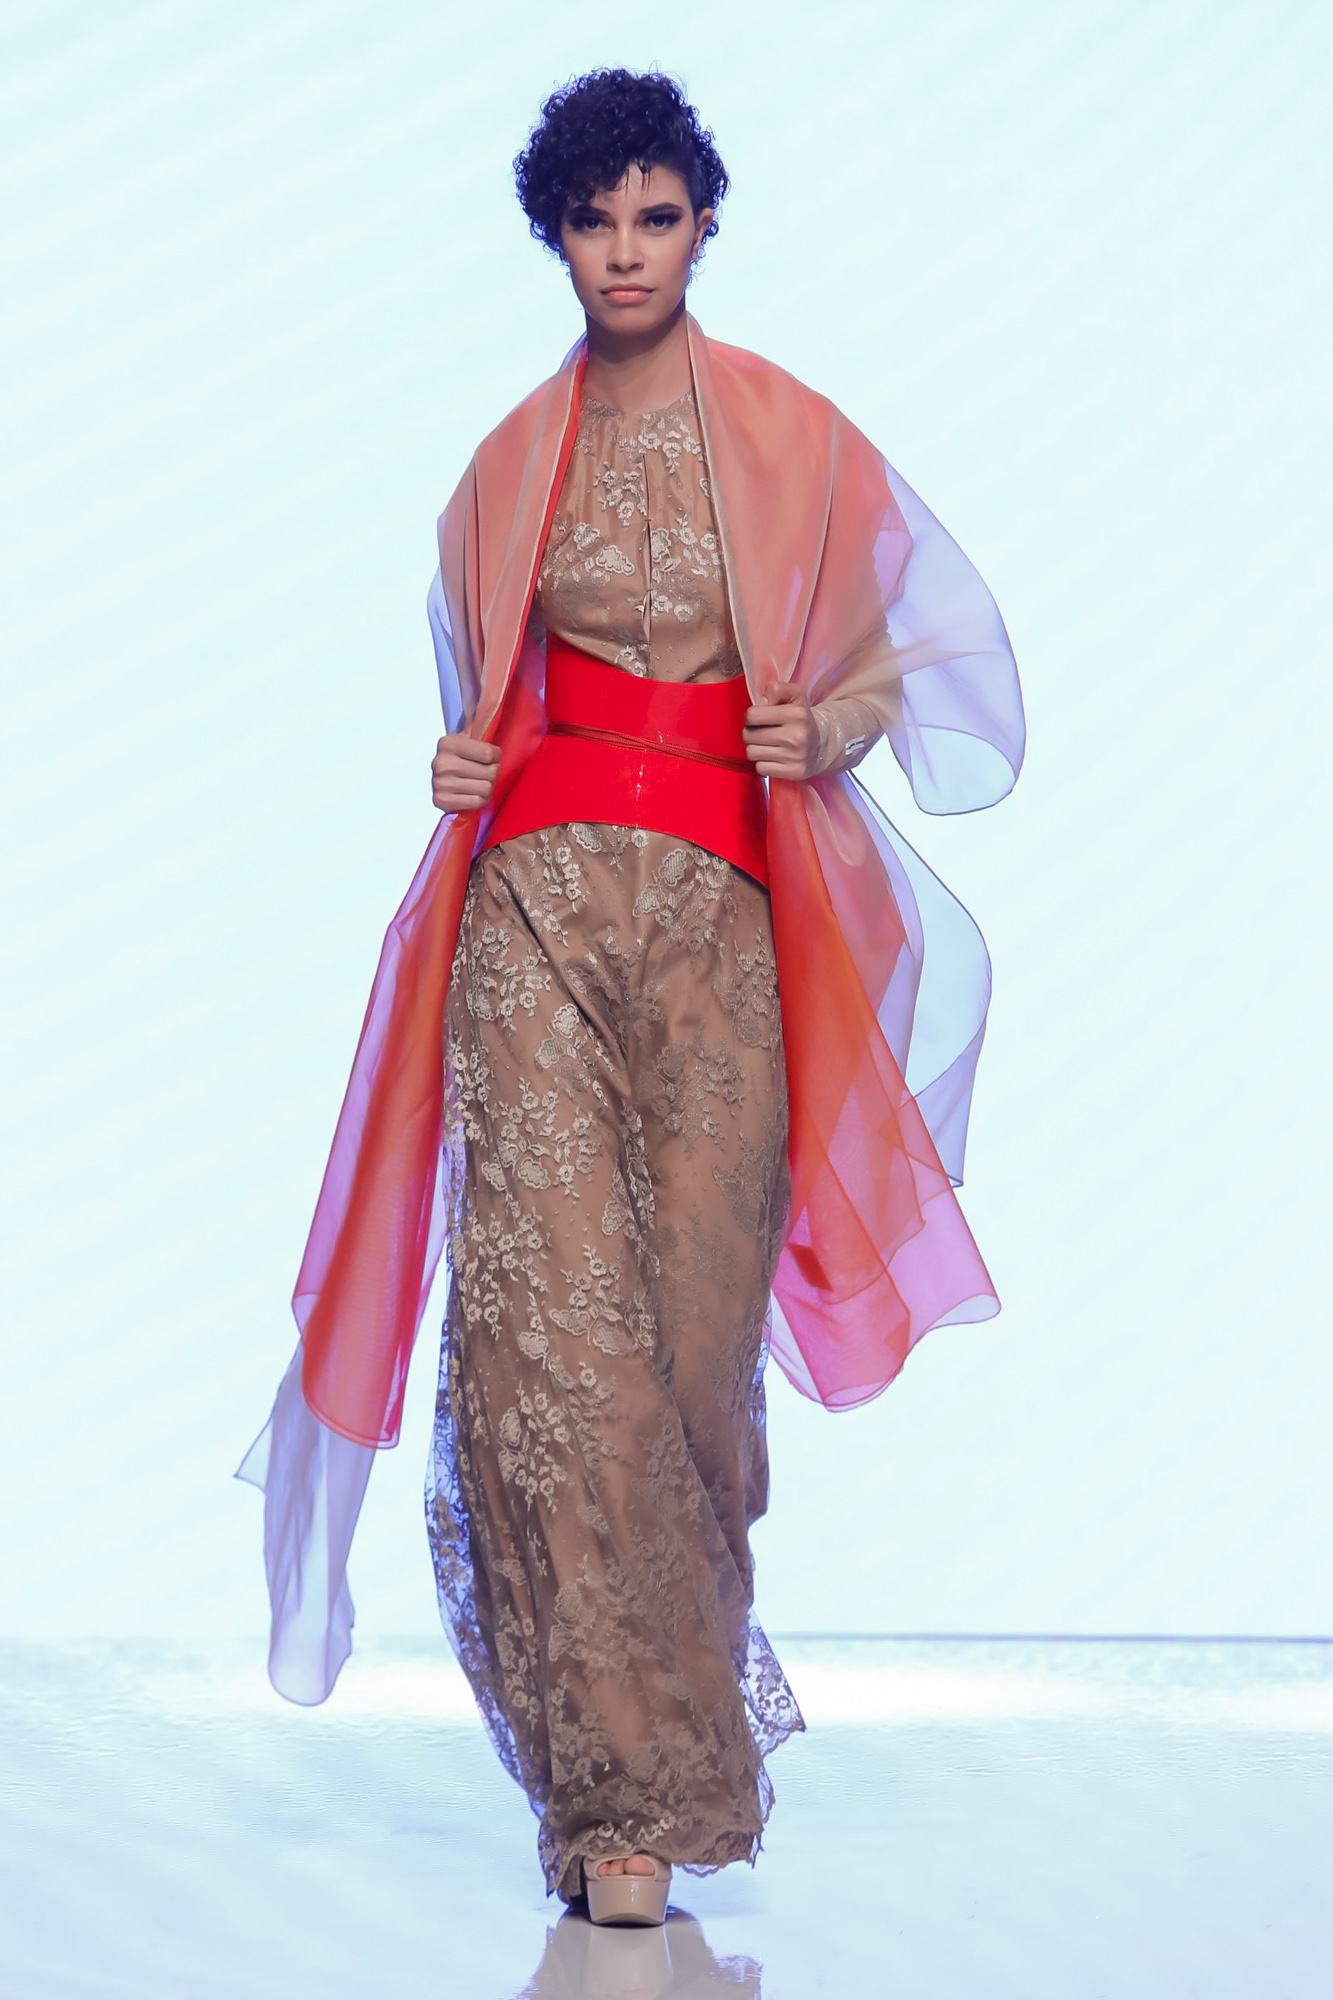 Juergen Christian Hoerl Resort 2020 Collection Arab Fashion Week in Dubai